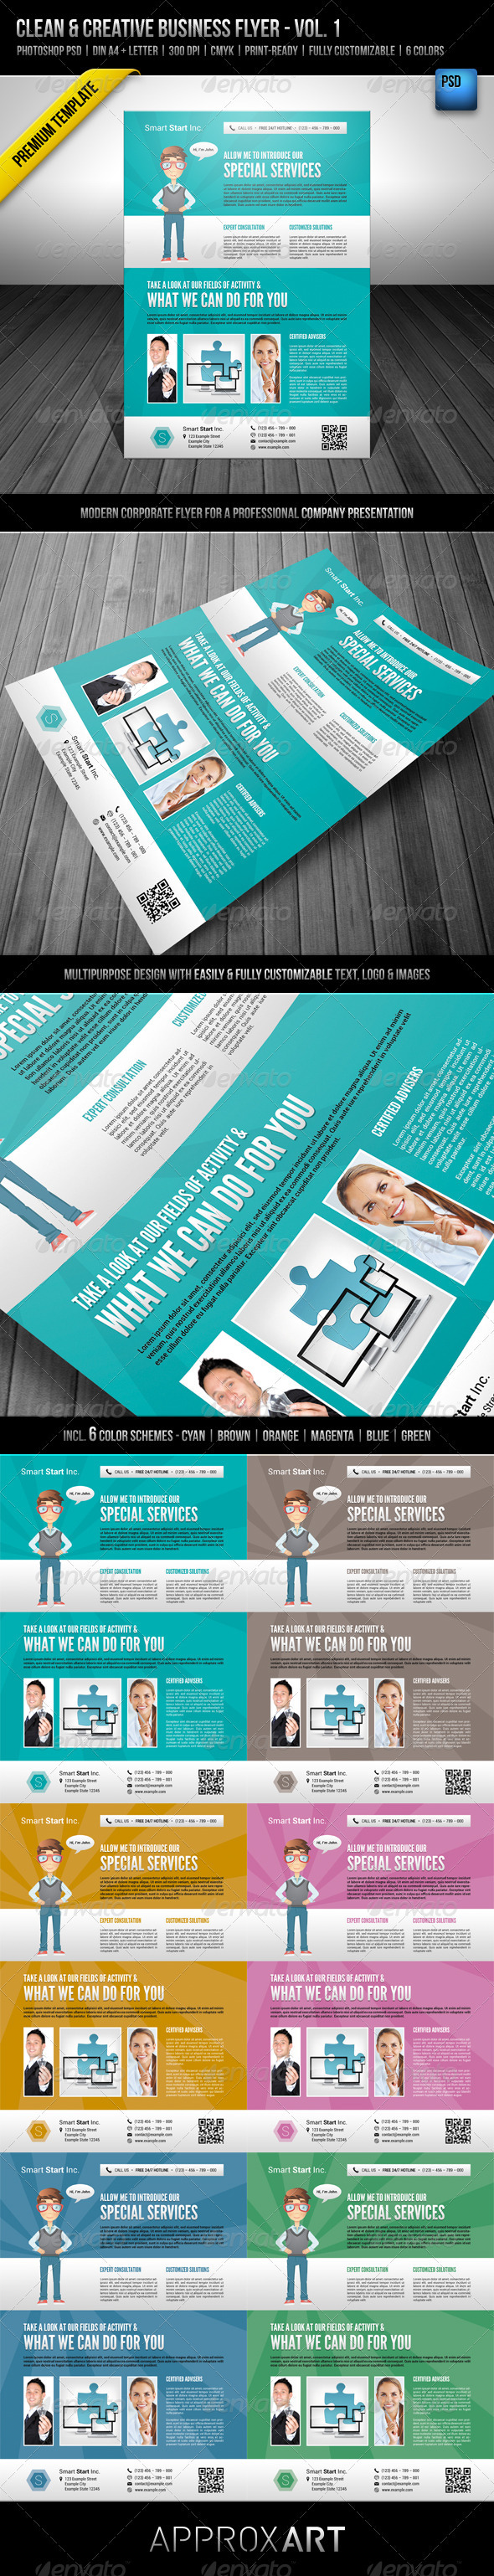 Clean & Creative Business Flyer - Vol. 1 - Corporate Flyers